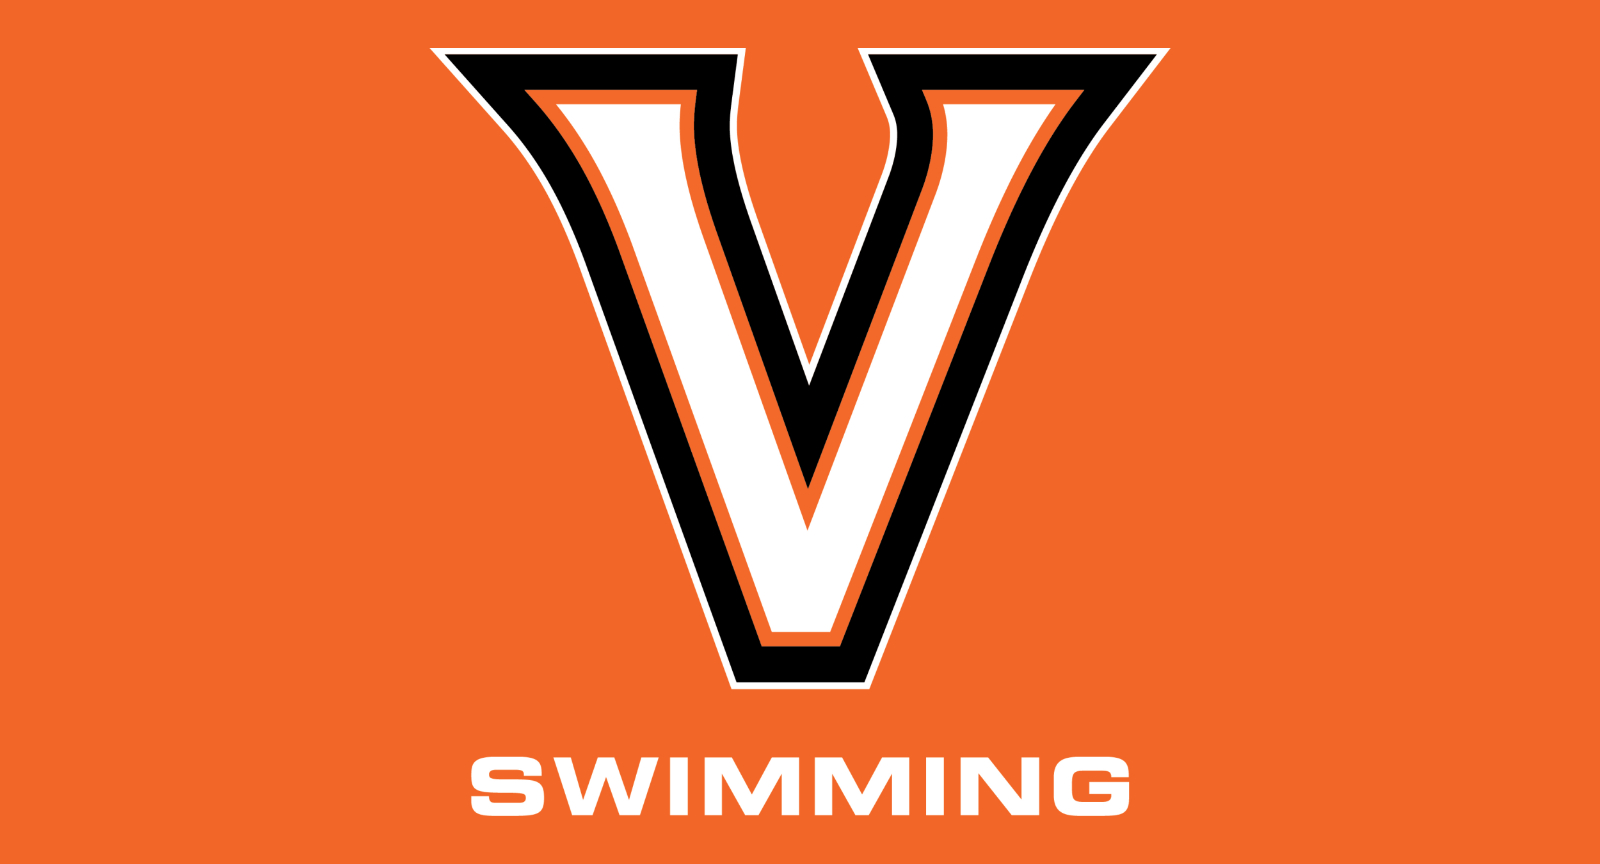 valley swimming - orange background